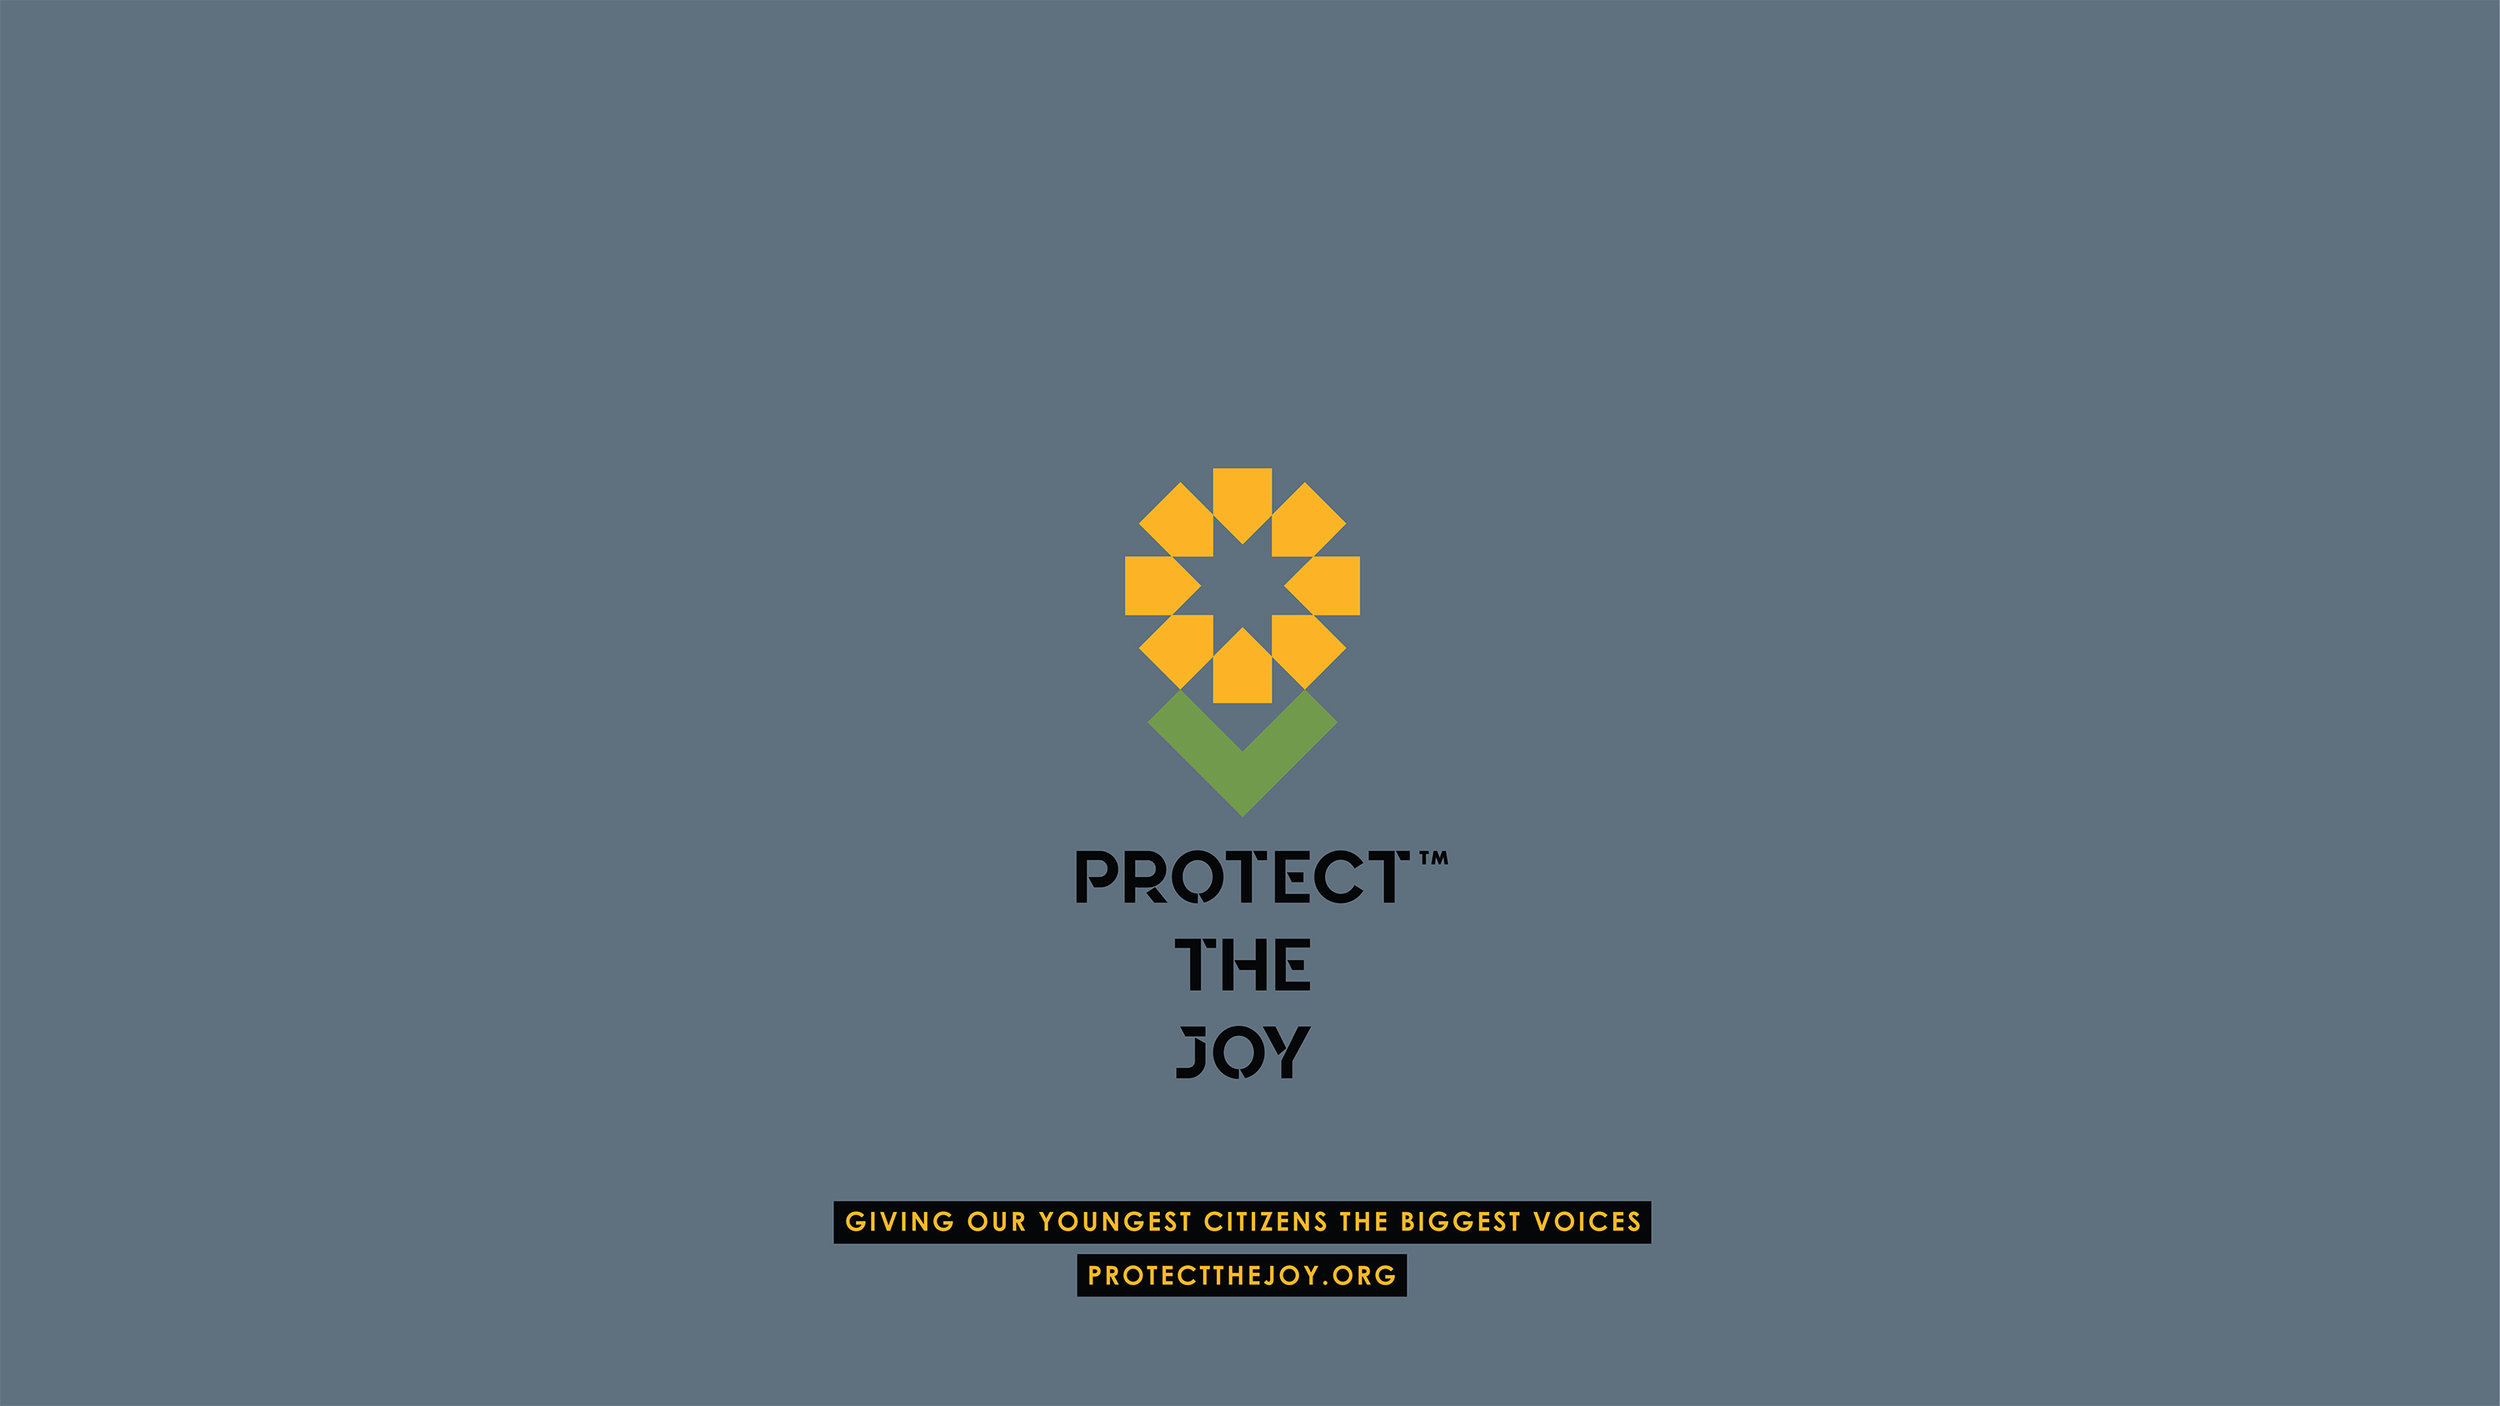 Protect-The-Joy-Gun-Violence-Campaign_05.jpg